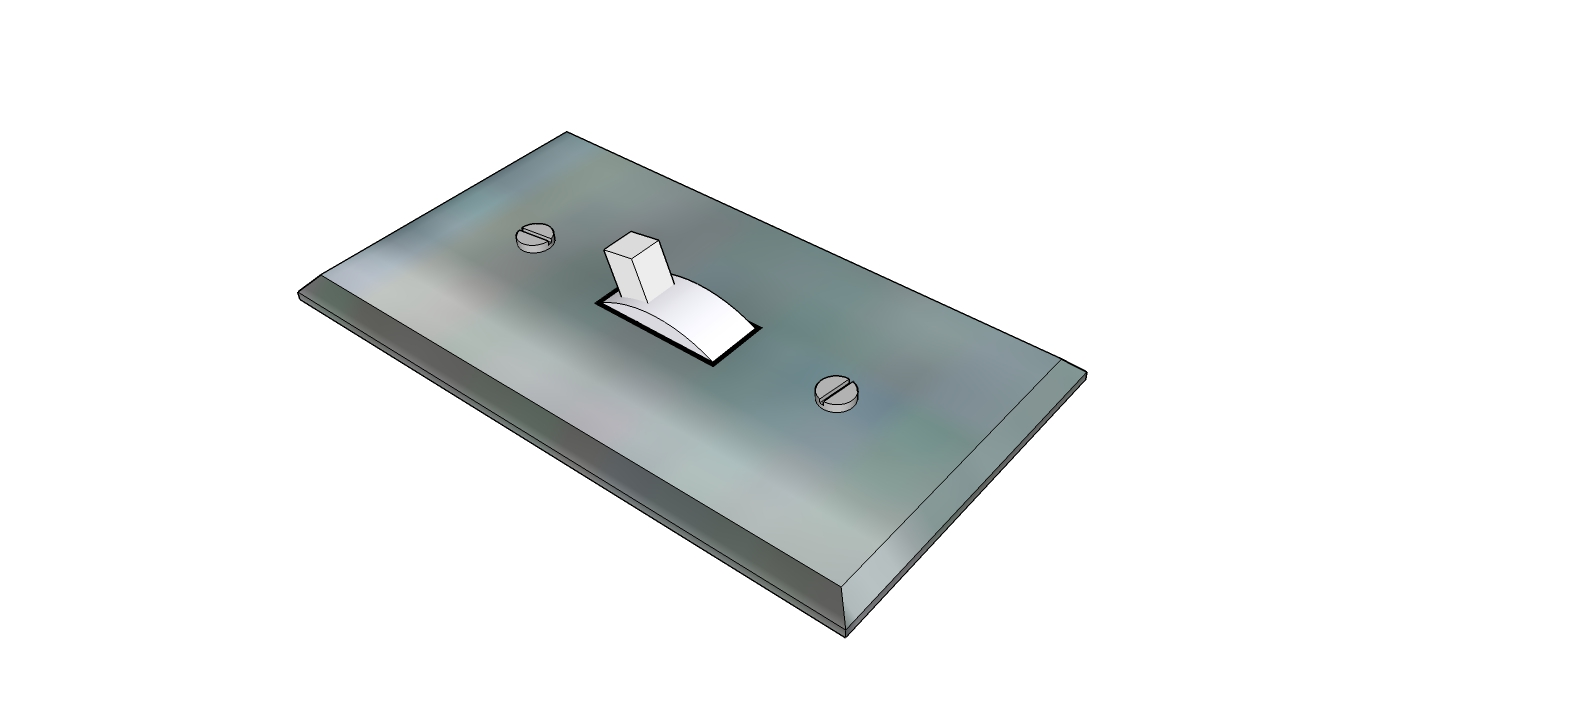 Picture of Light Switch